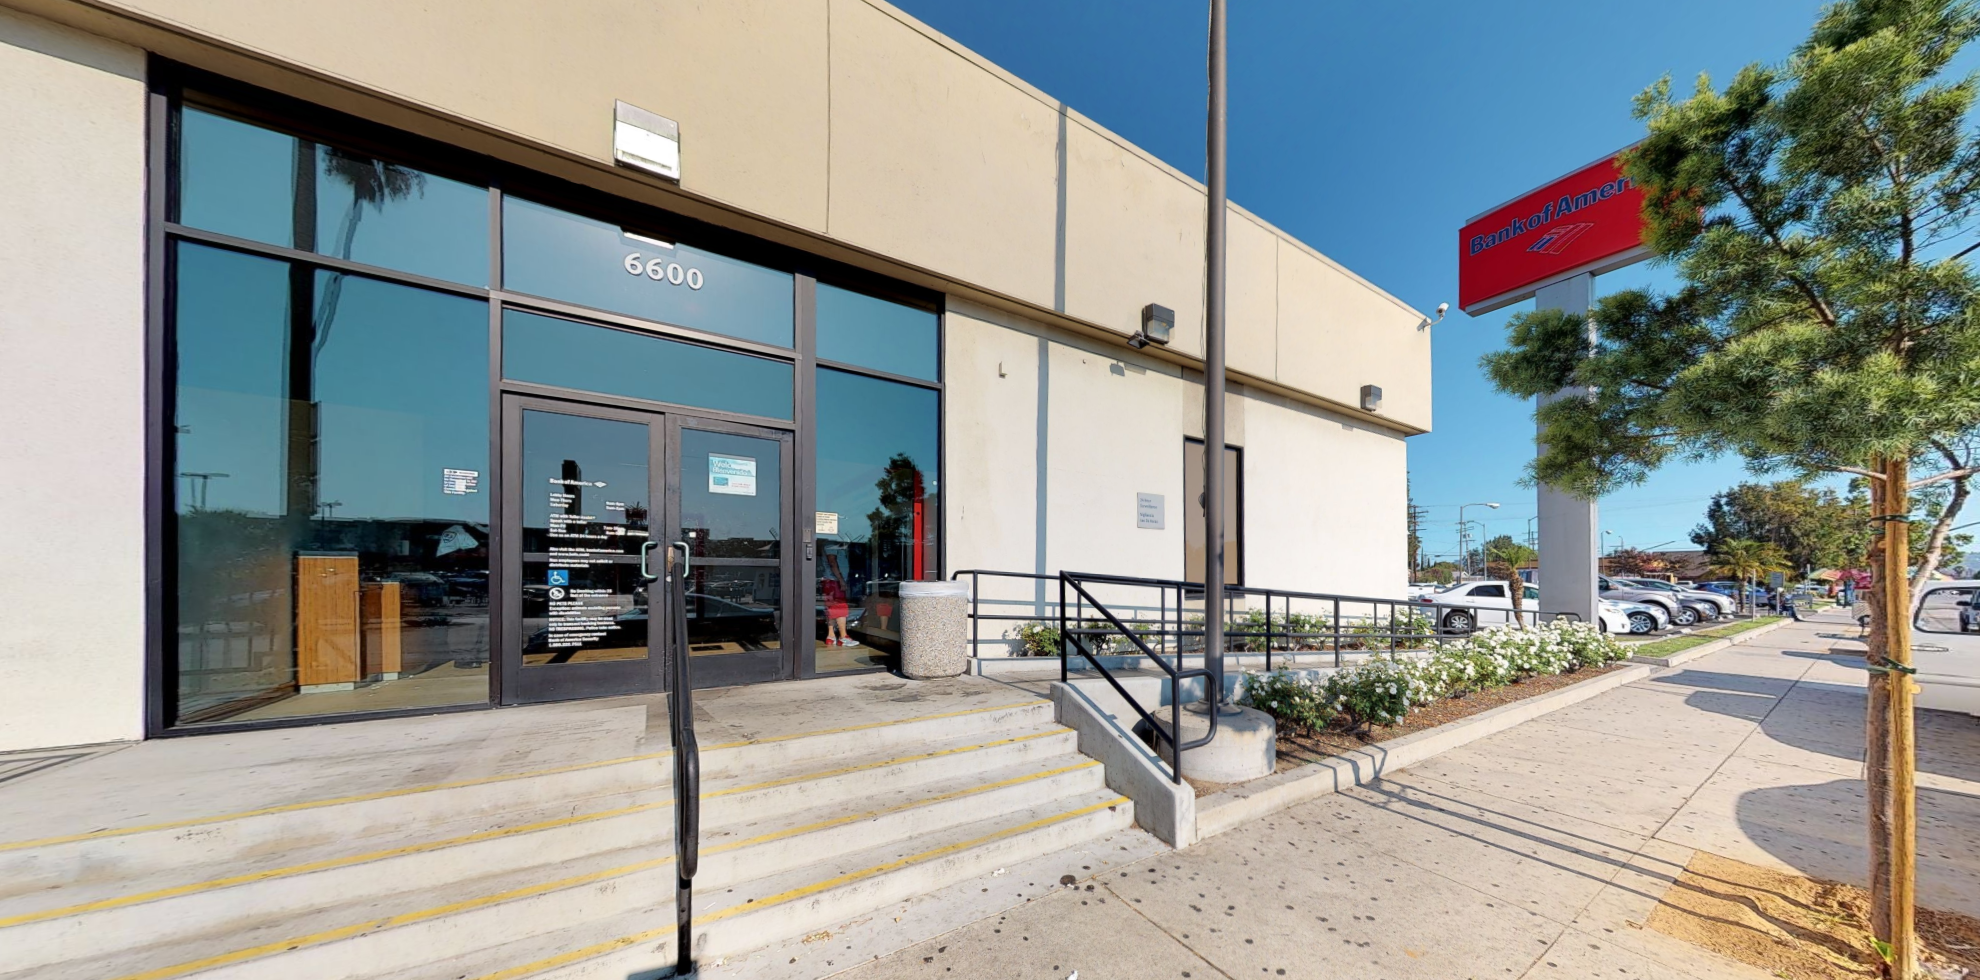 Bank of America financial center with walk-up ATM | 6600 Laurel Canyon Blvd, North Hollywood, CA 91606